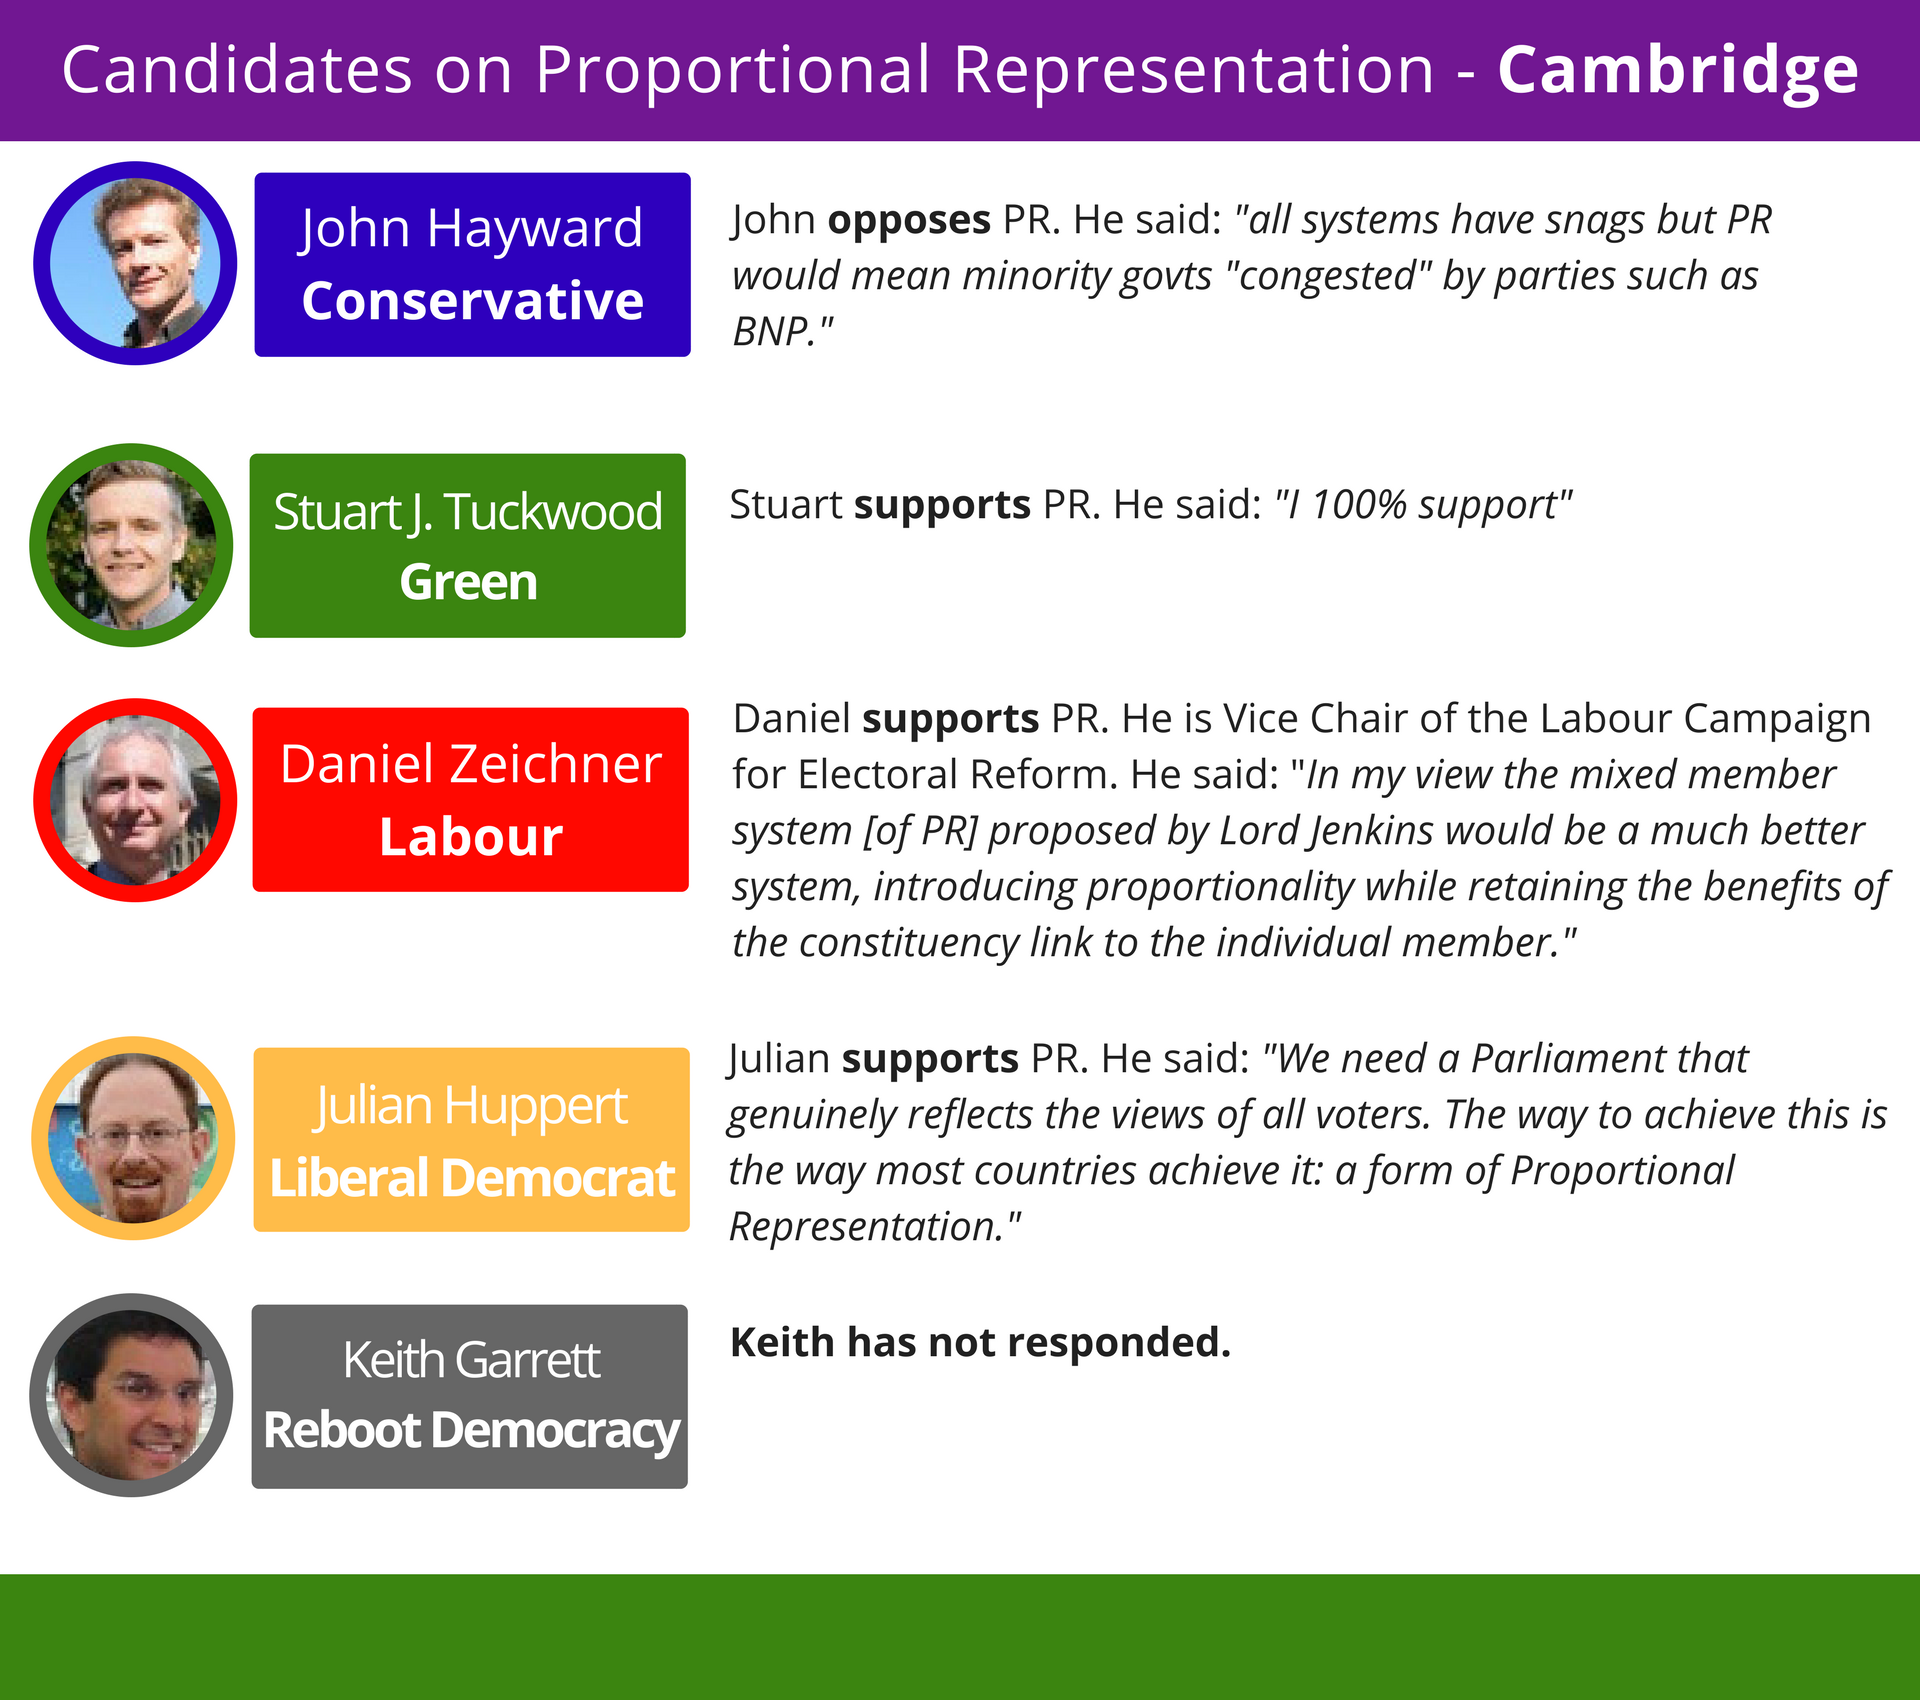 Heading north, Cambridge could be a close race between electoral reformers. The anti-PR party in this constituency came a distant third last time around.